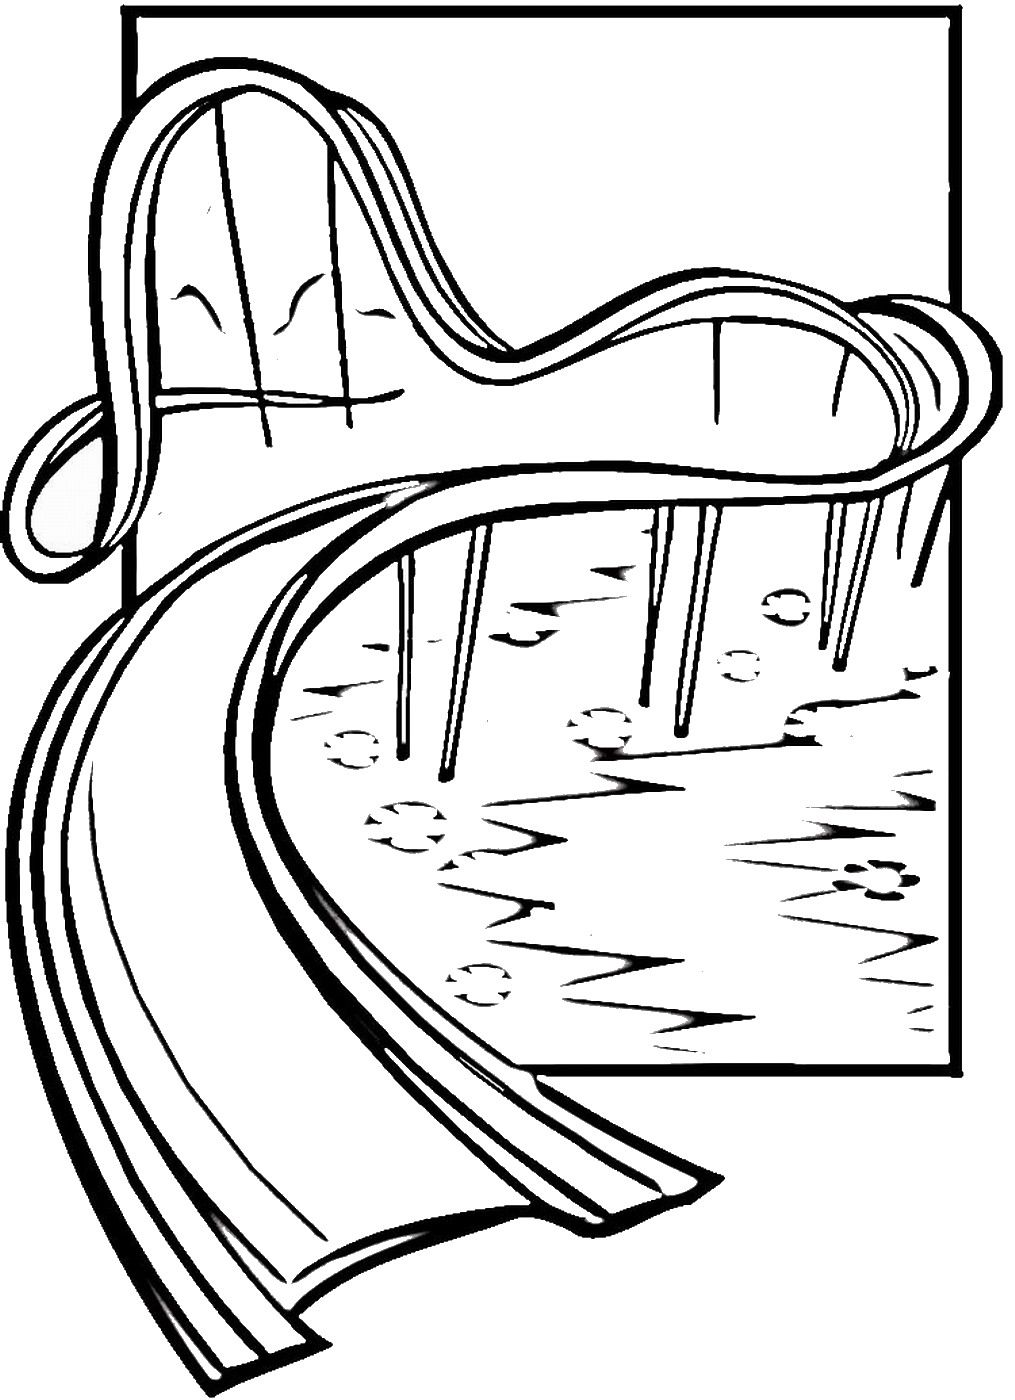 water slide coloring pages - photo#1